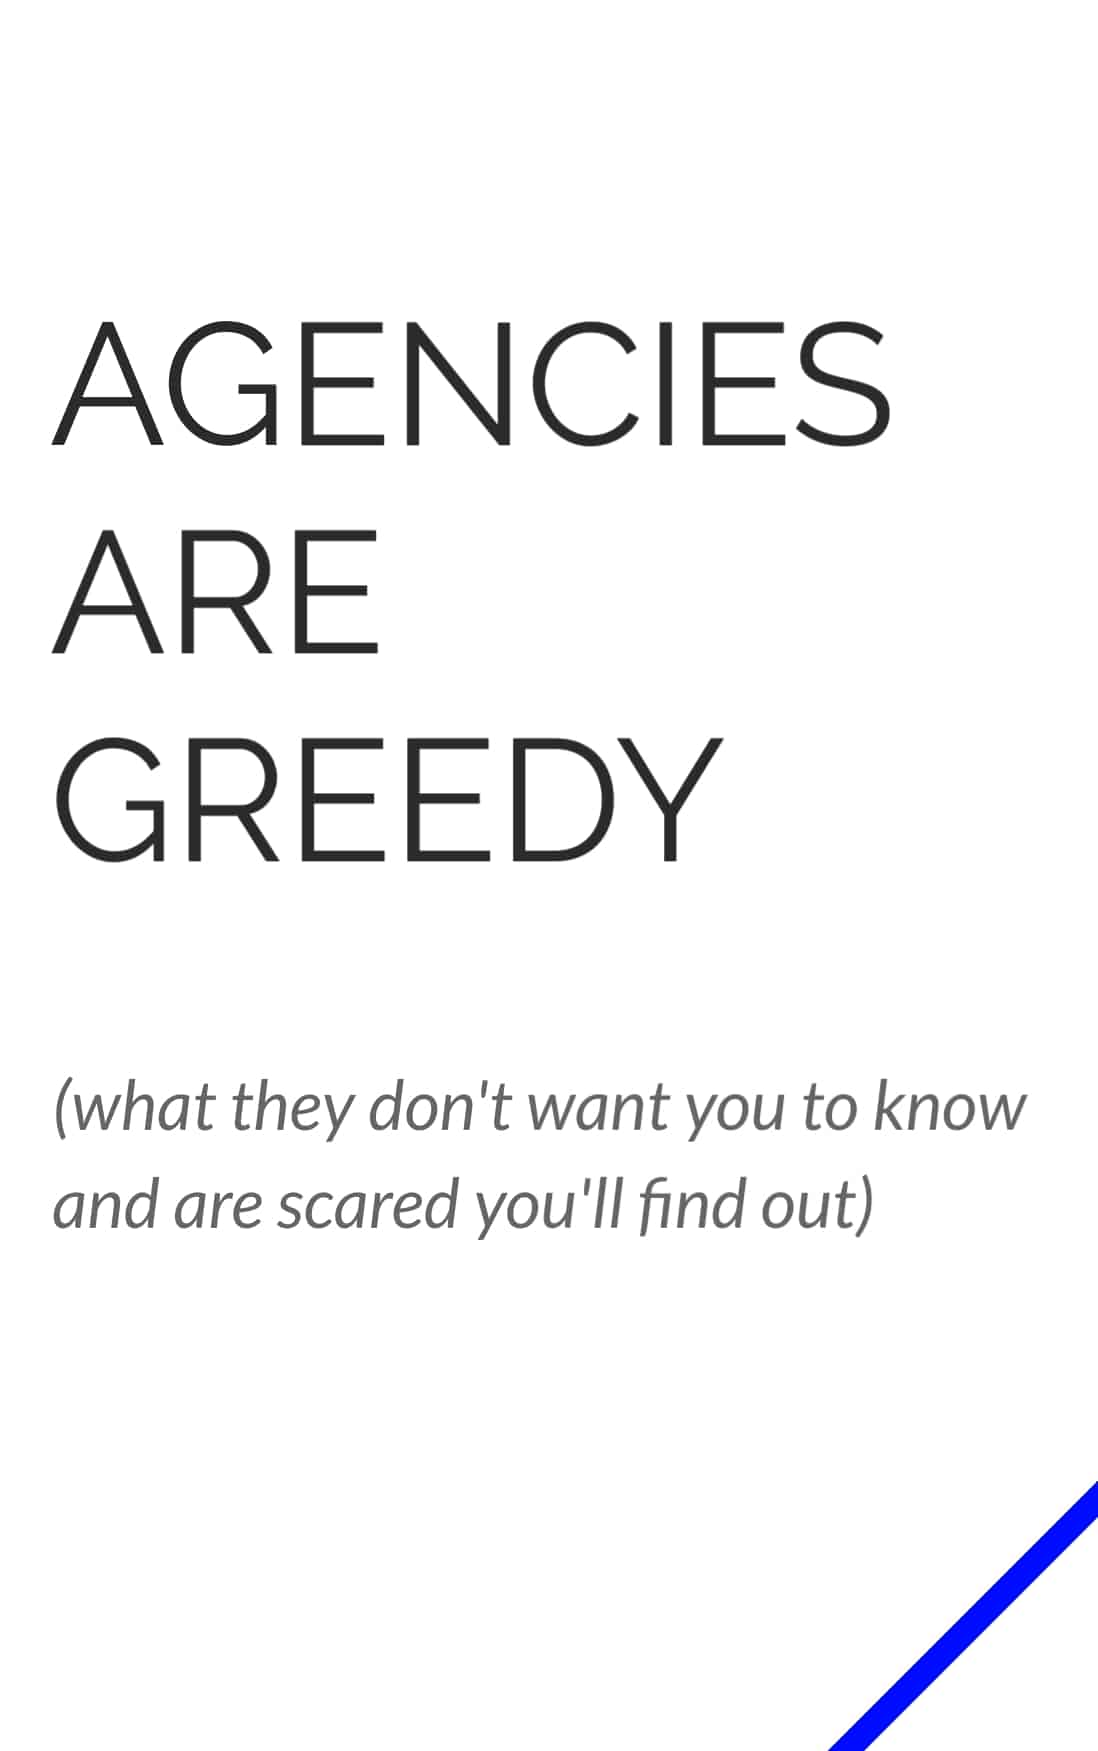 Agencies are Greedy